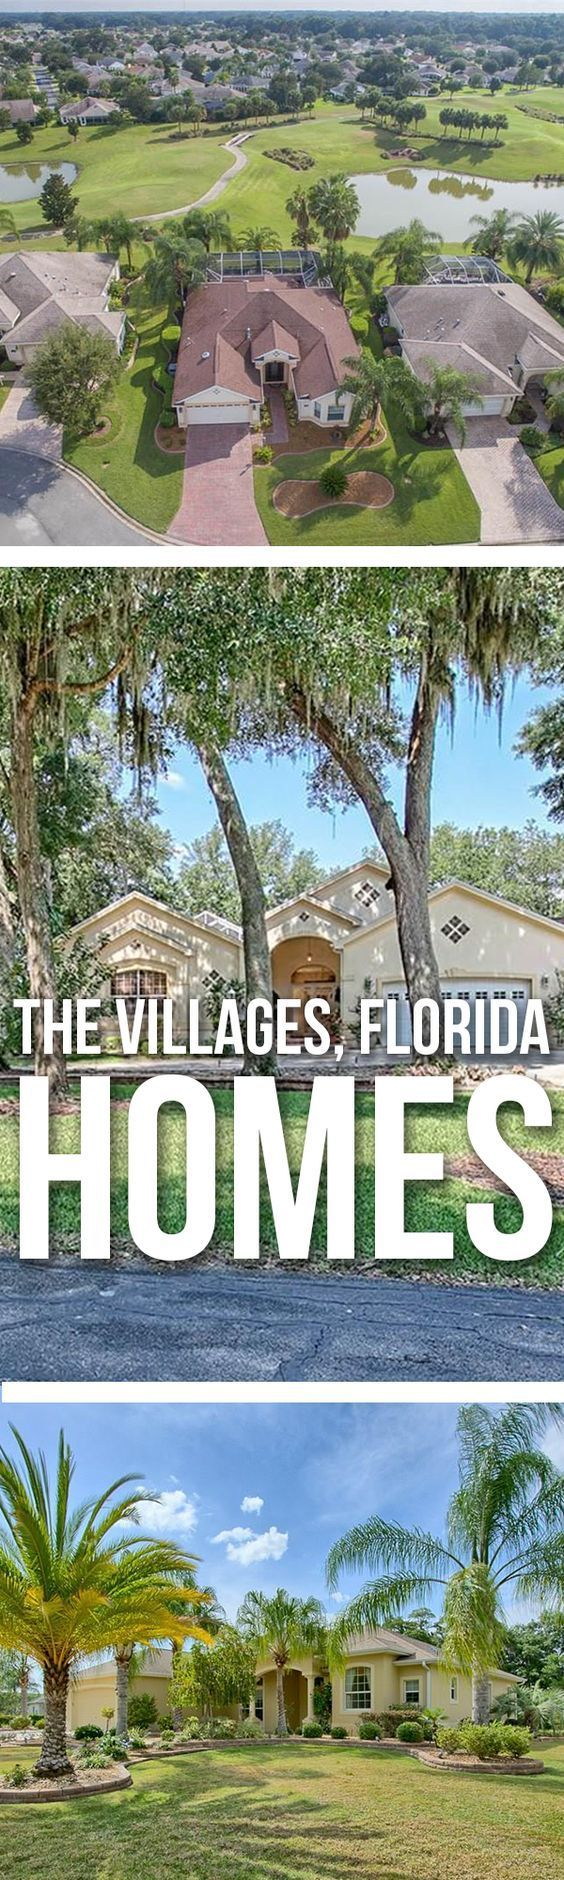 Browse homes for sale in The Villages, Florida! - Real Estate is the single great tool that you can use to build wealth. Find out how I can help you sell your home in El Paso, or buy your dream home. Curious as to what your home is worth? Click the link to see how I can help you out!